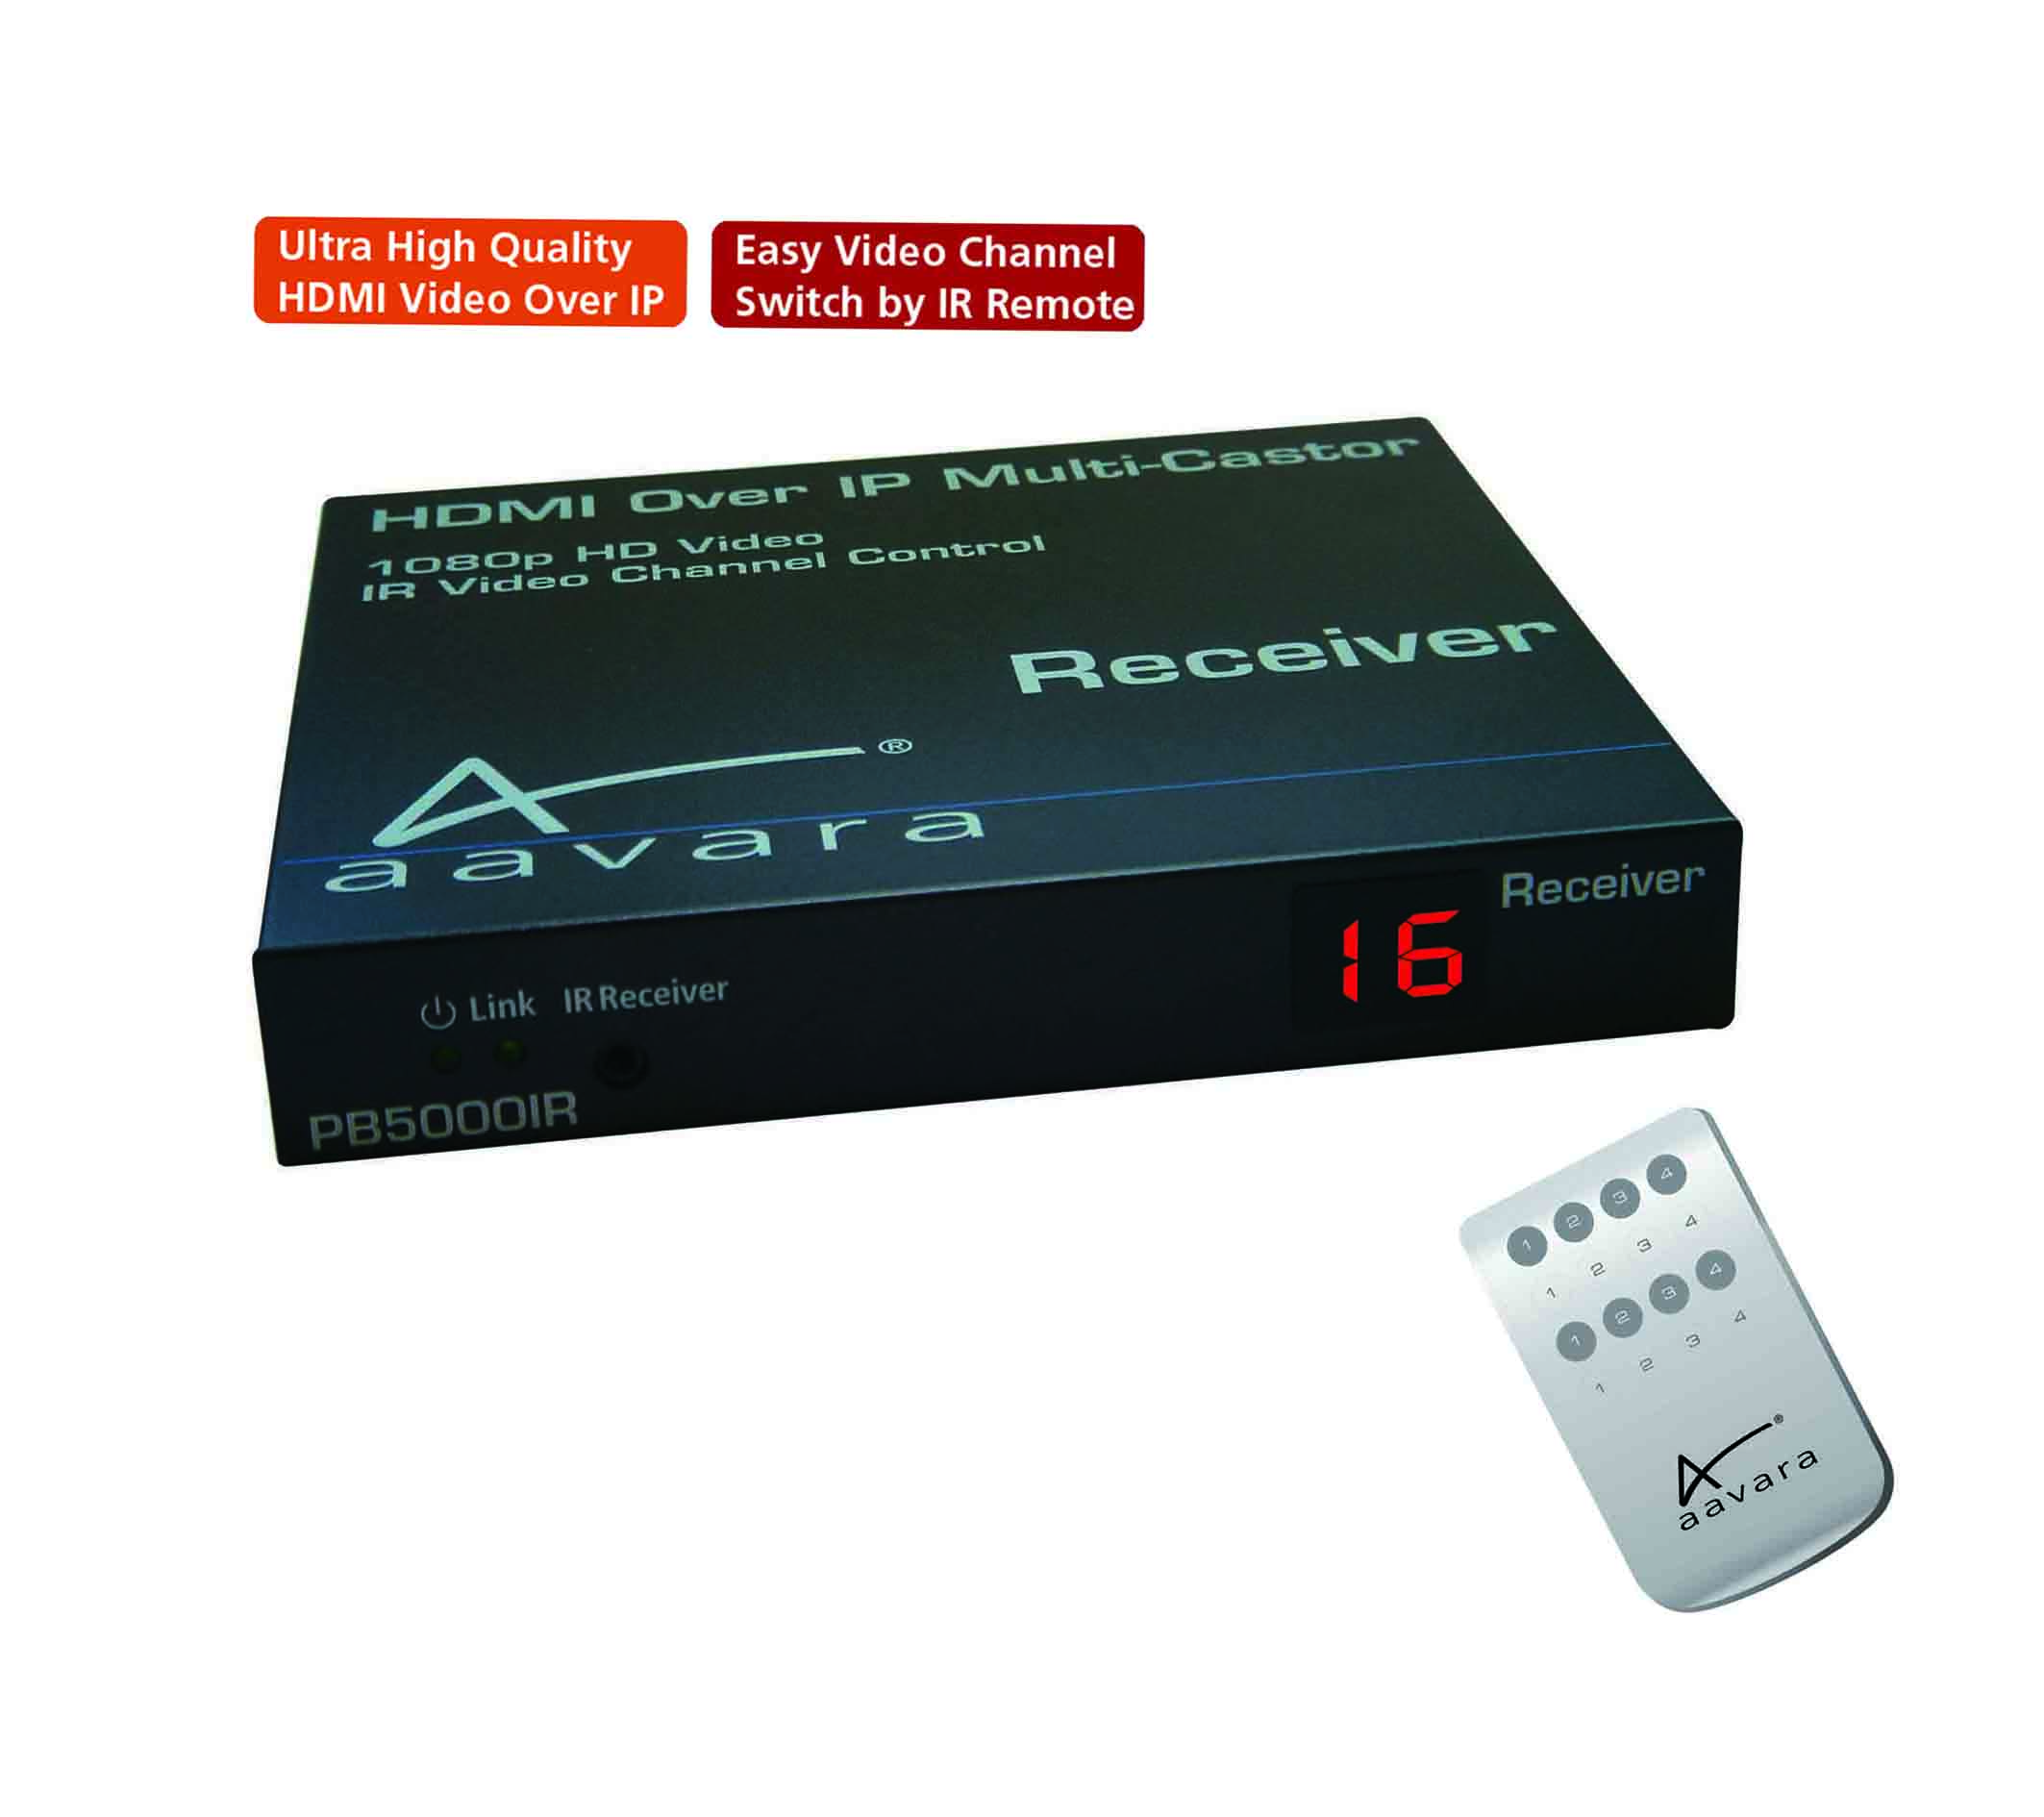 Aavara Professional Av Brand For Hdmi Over Ip Single Ir Remote Control Receiver W